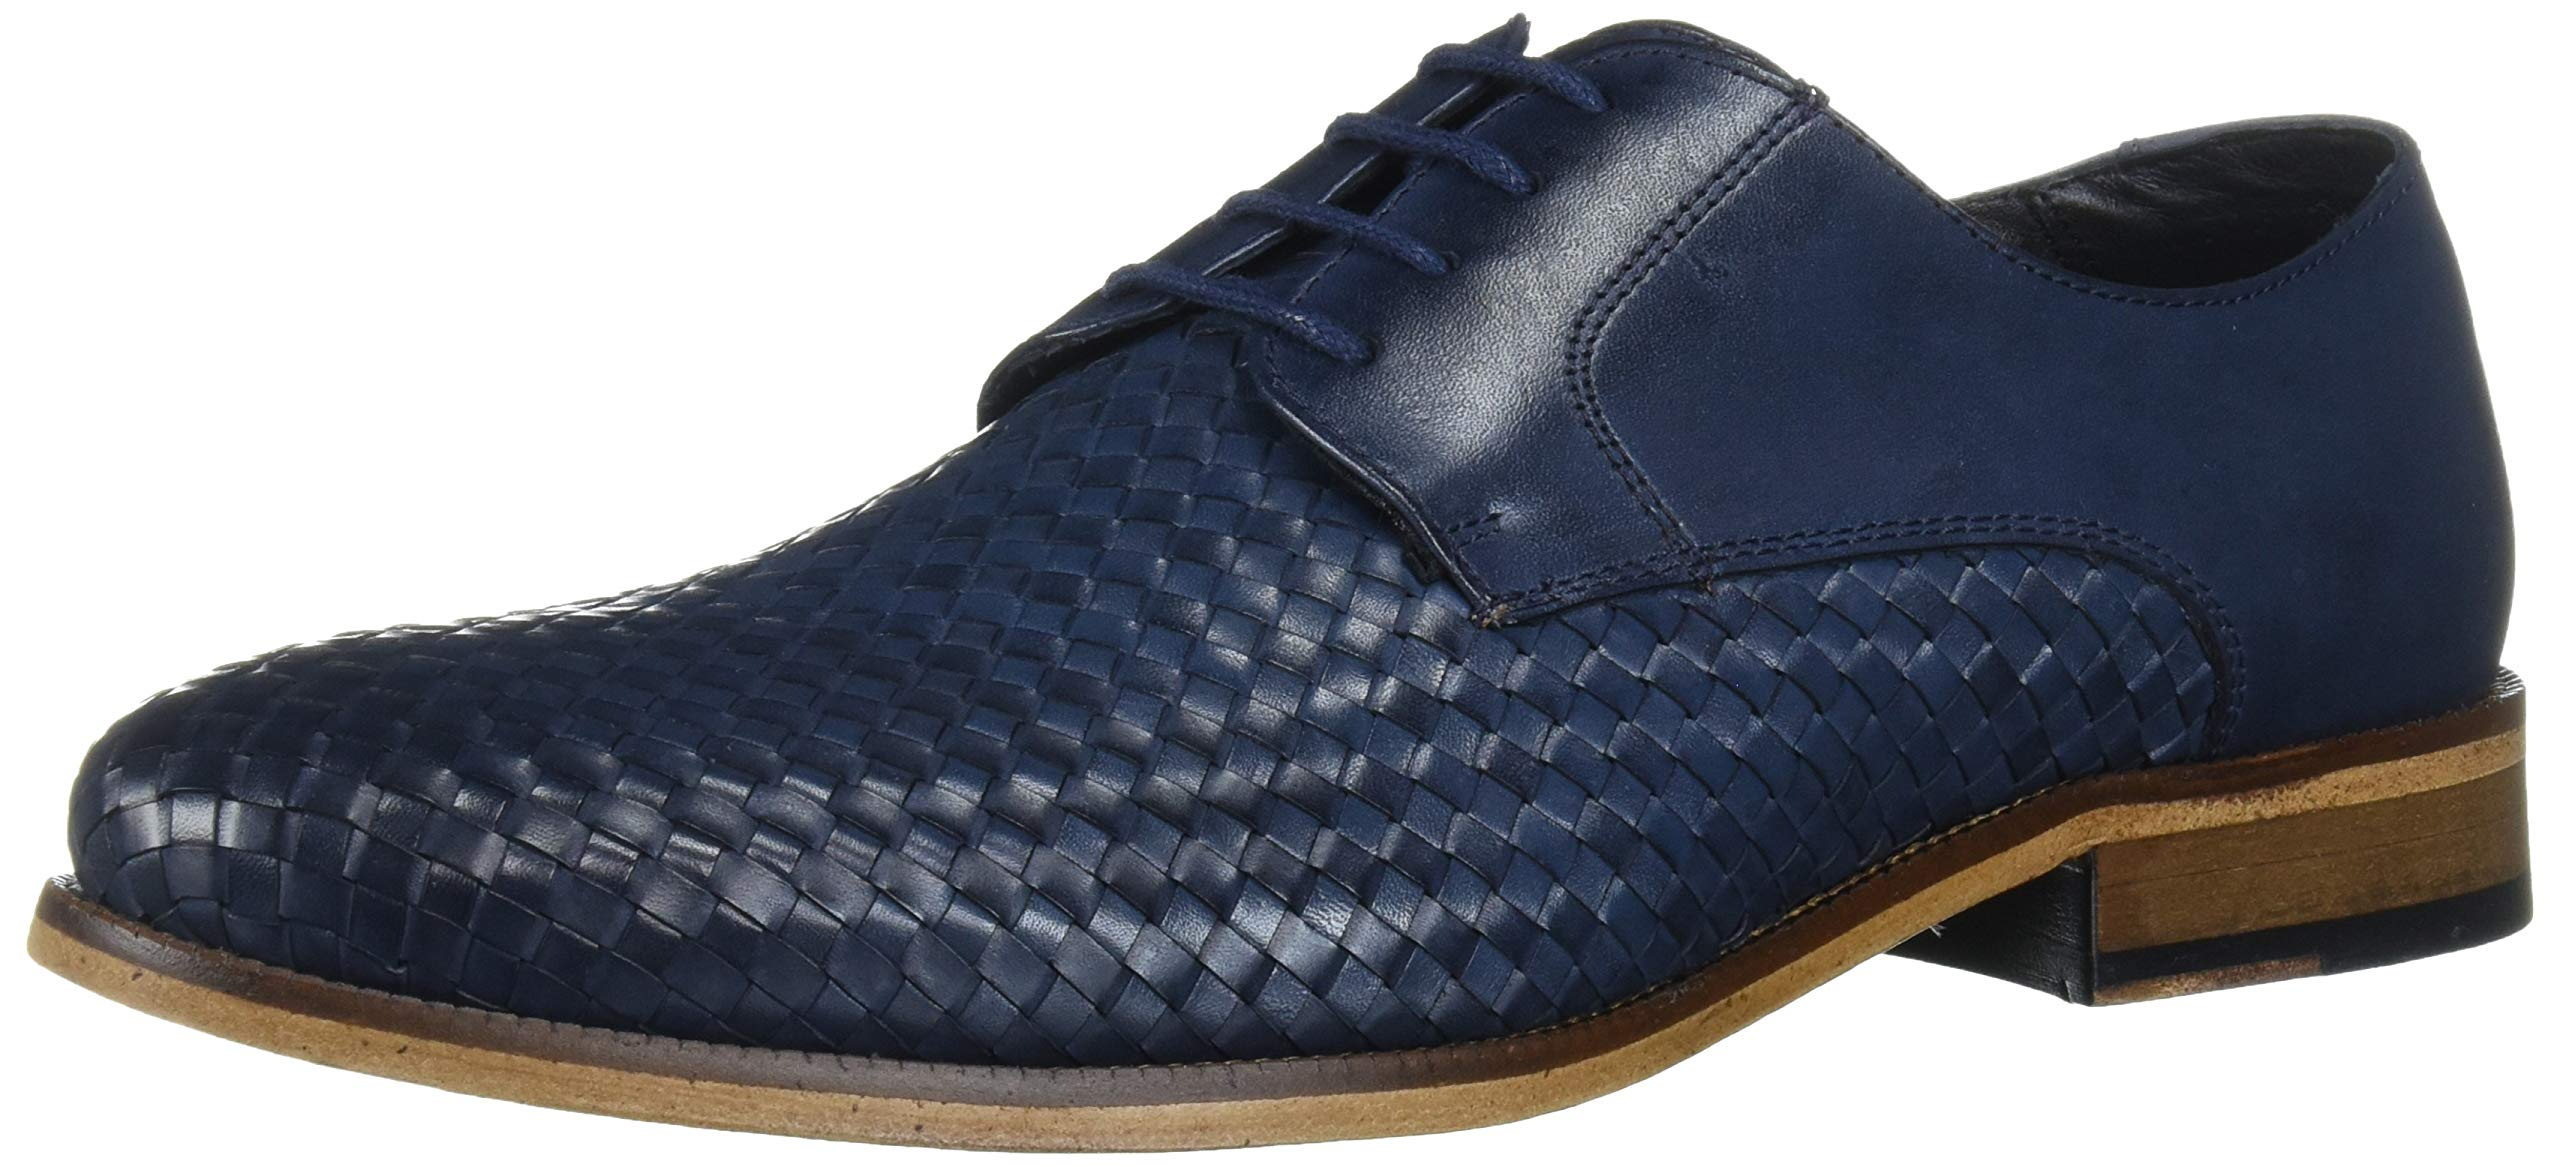 MARC JOSEPH NEW YORK Men's Leather Gold Collection Dress Woven Oxford